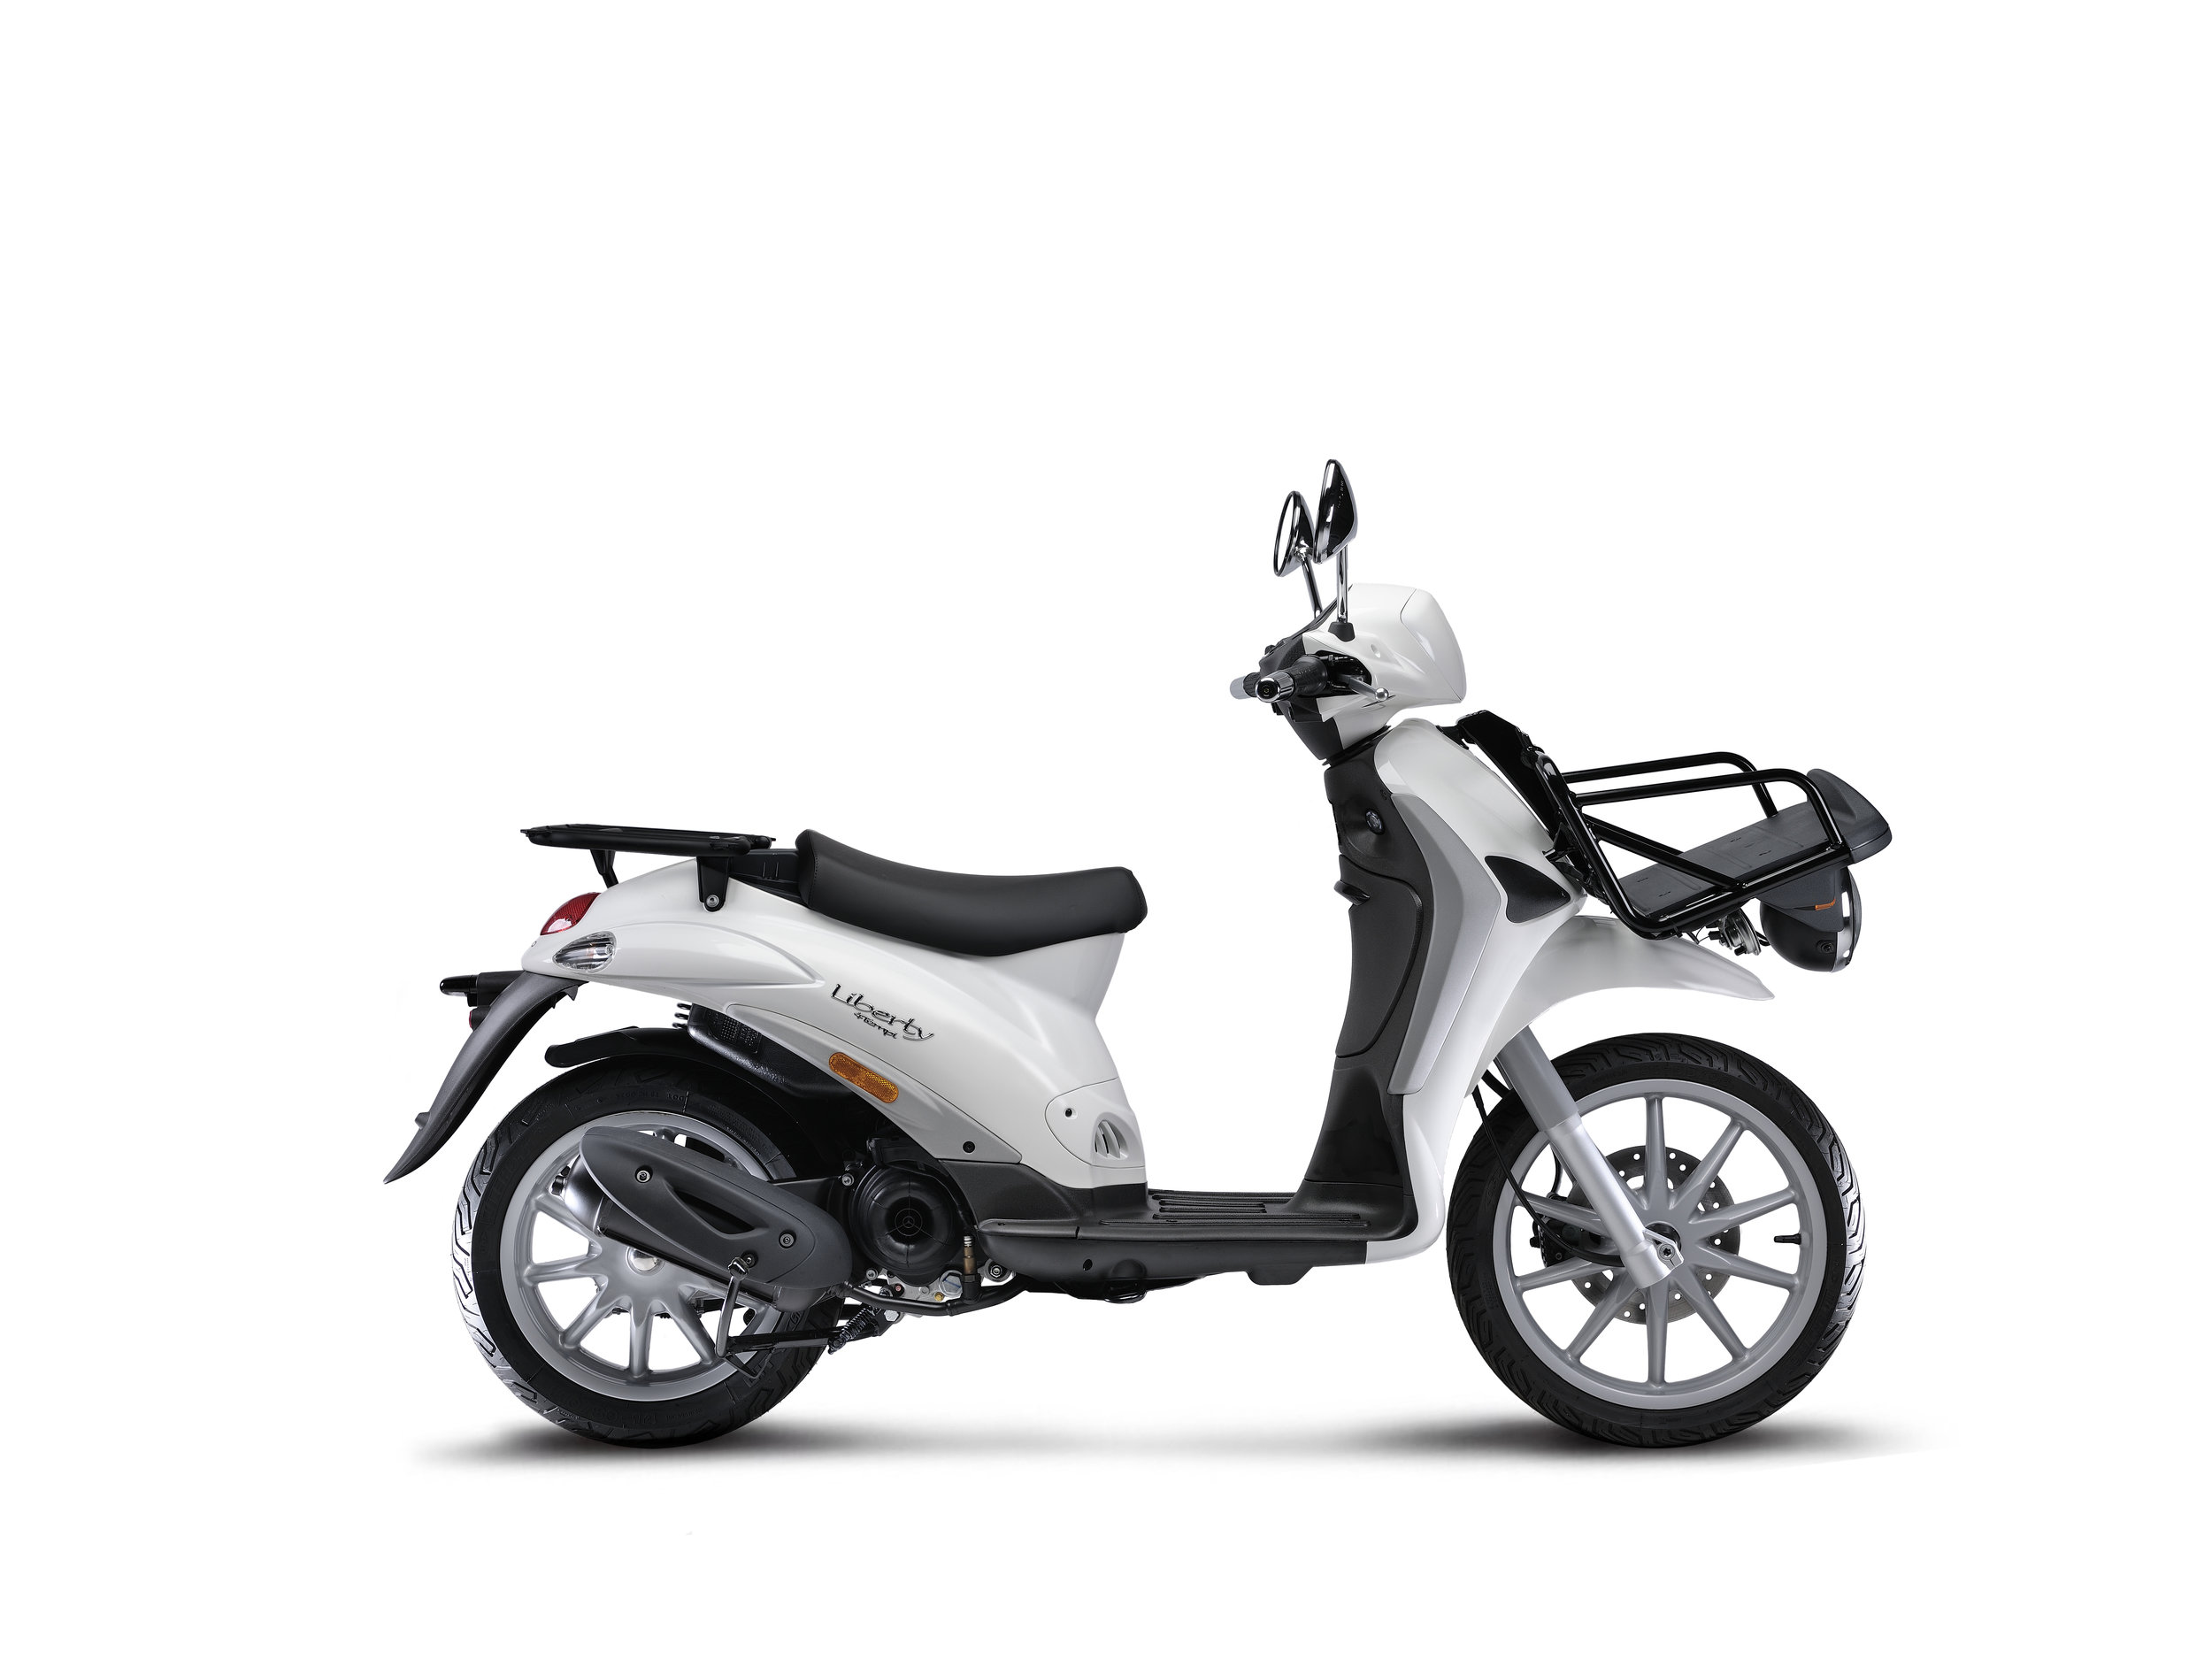 Piaggio Liberty delivery 50 Side Dx Double Rack.jpg